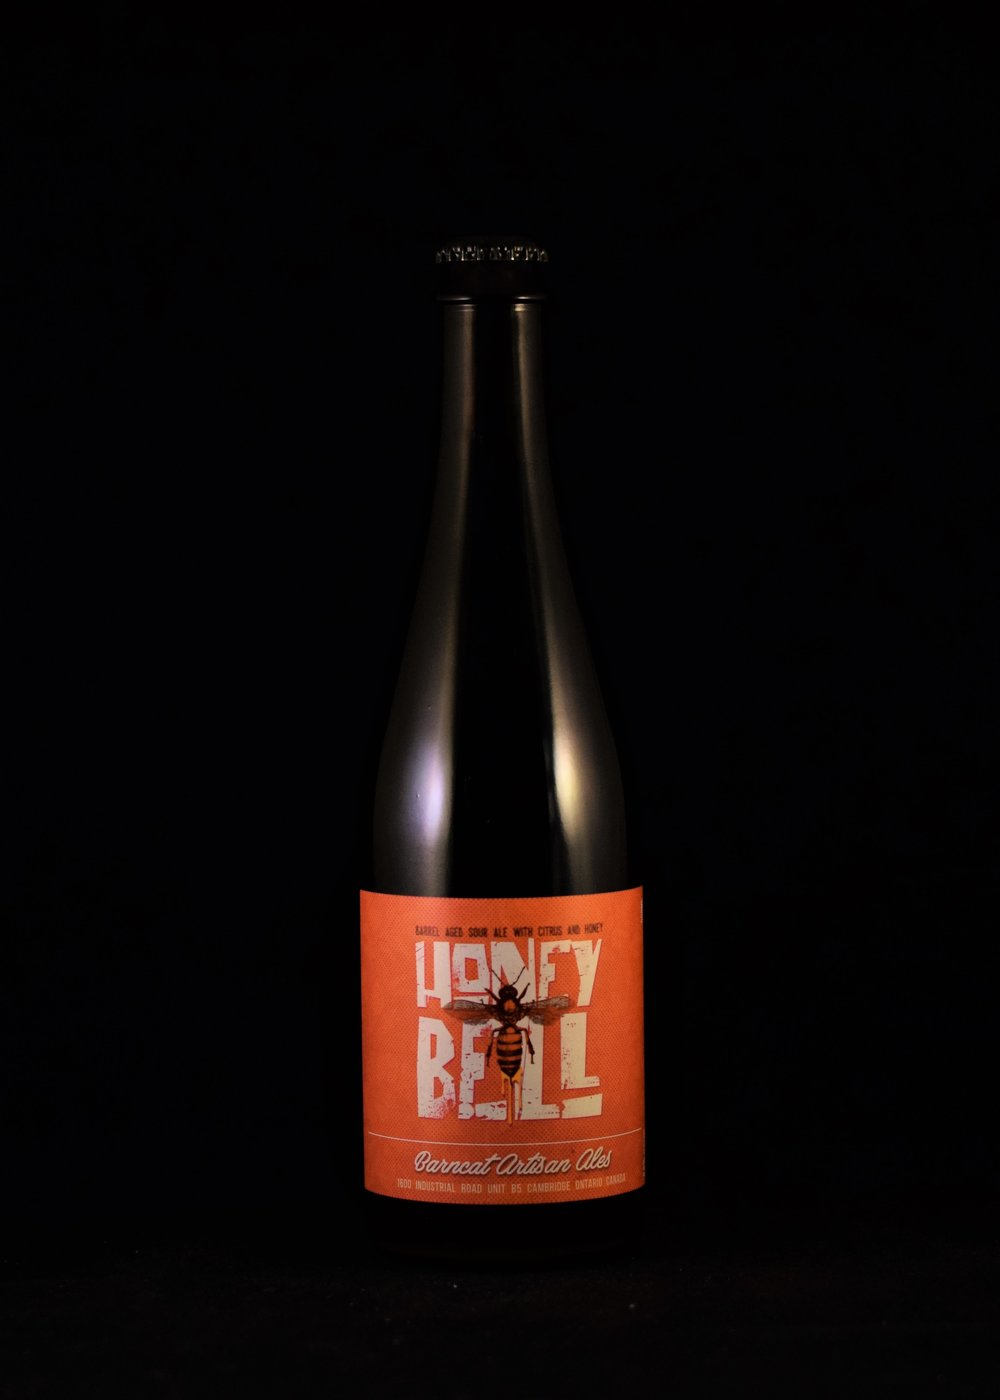 Barncat - Honey Bell